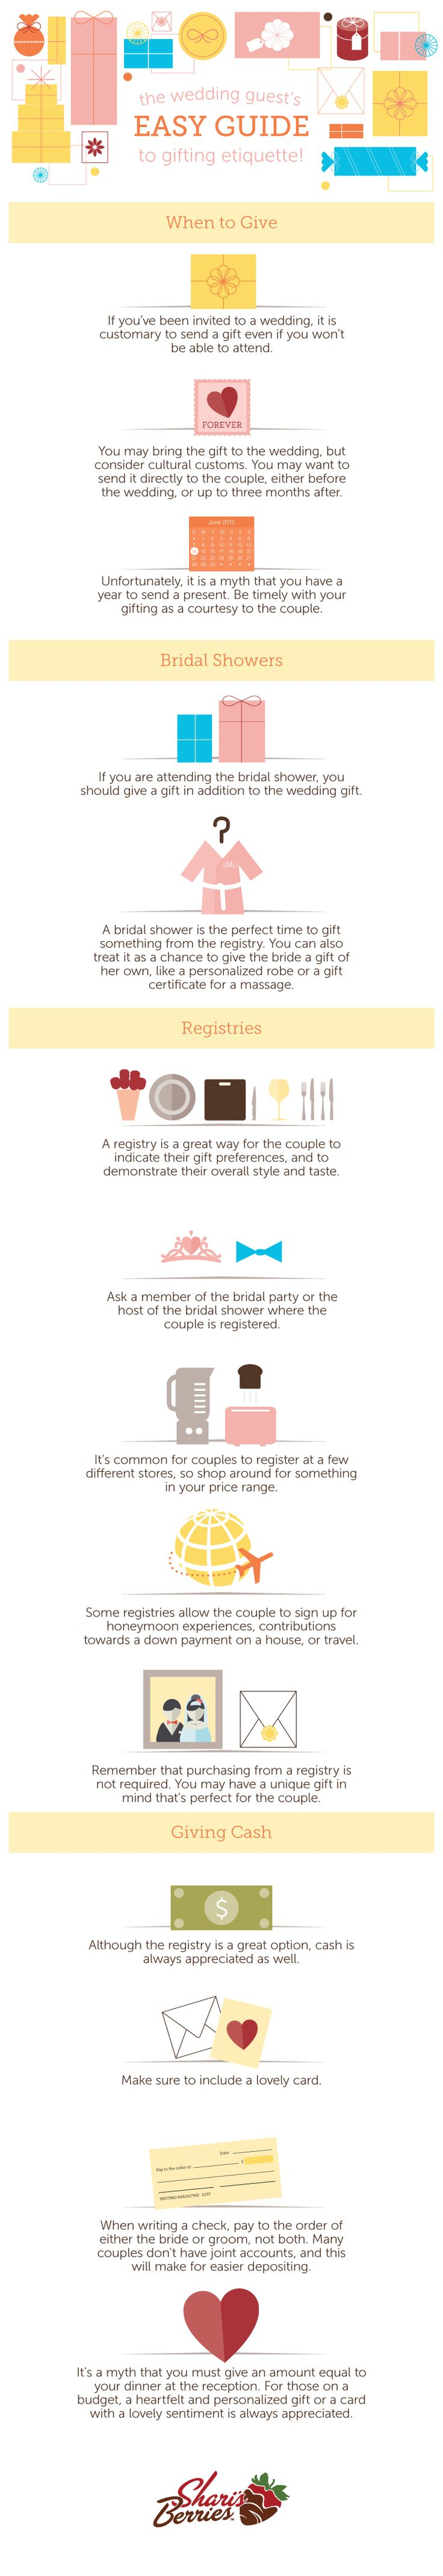 The Wedding Guest S Easy Guide To Gifting Etiquette Infographic